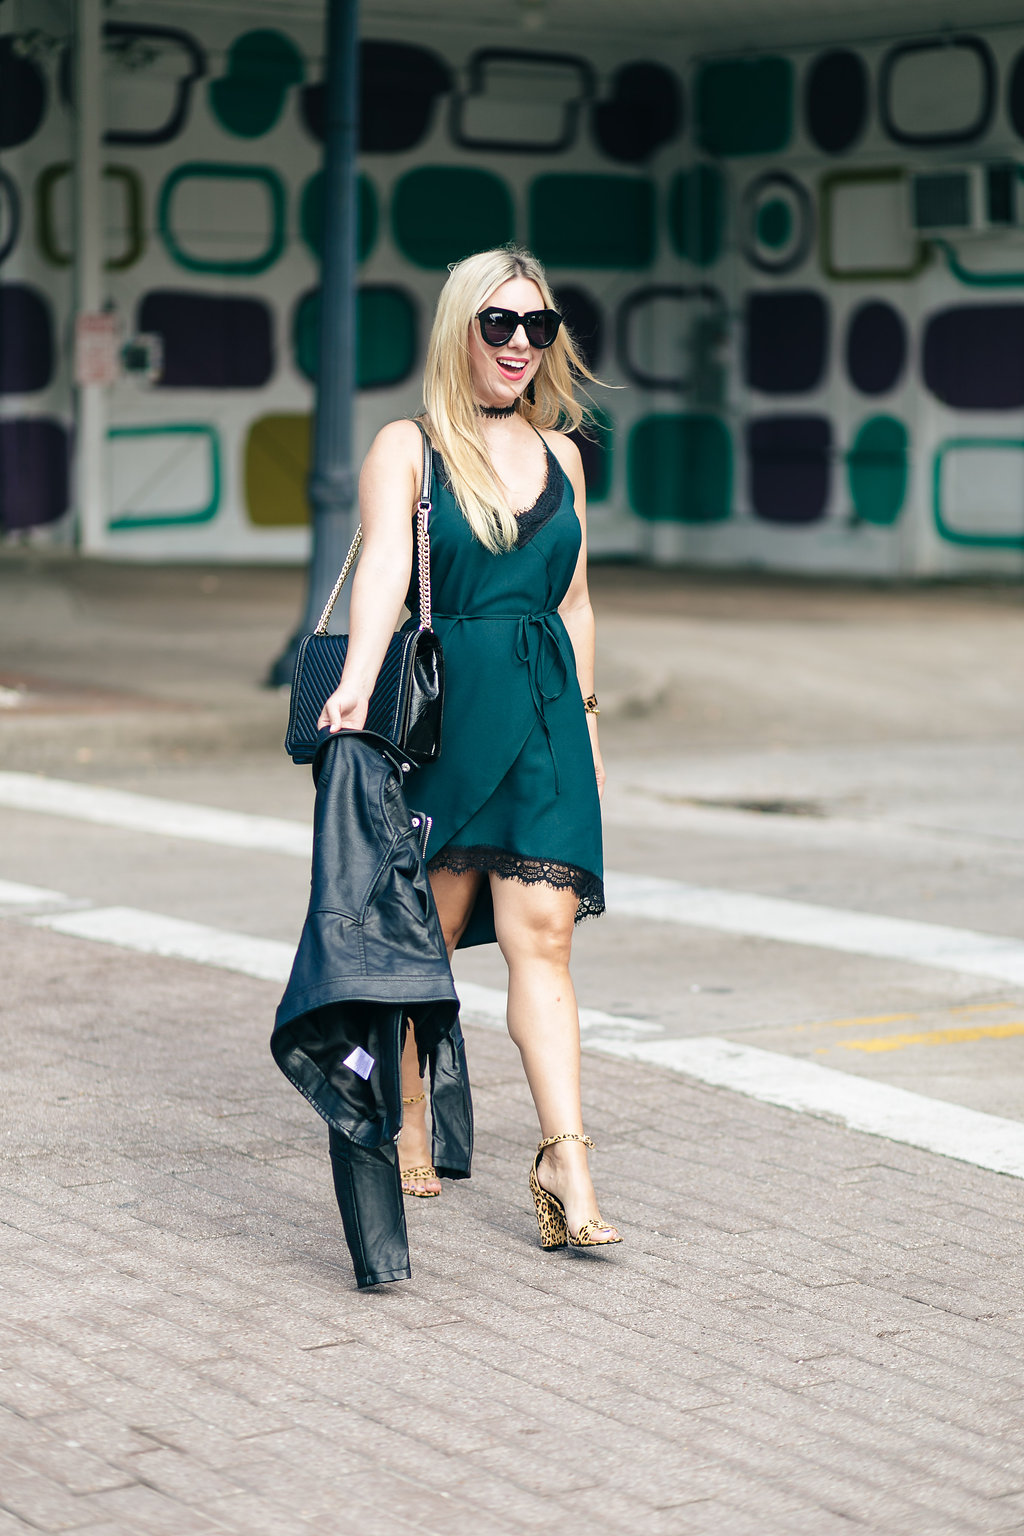 Fall Fashion | Slip Dress